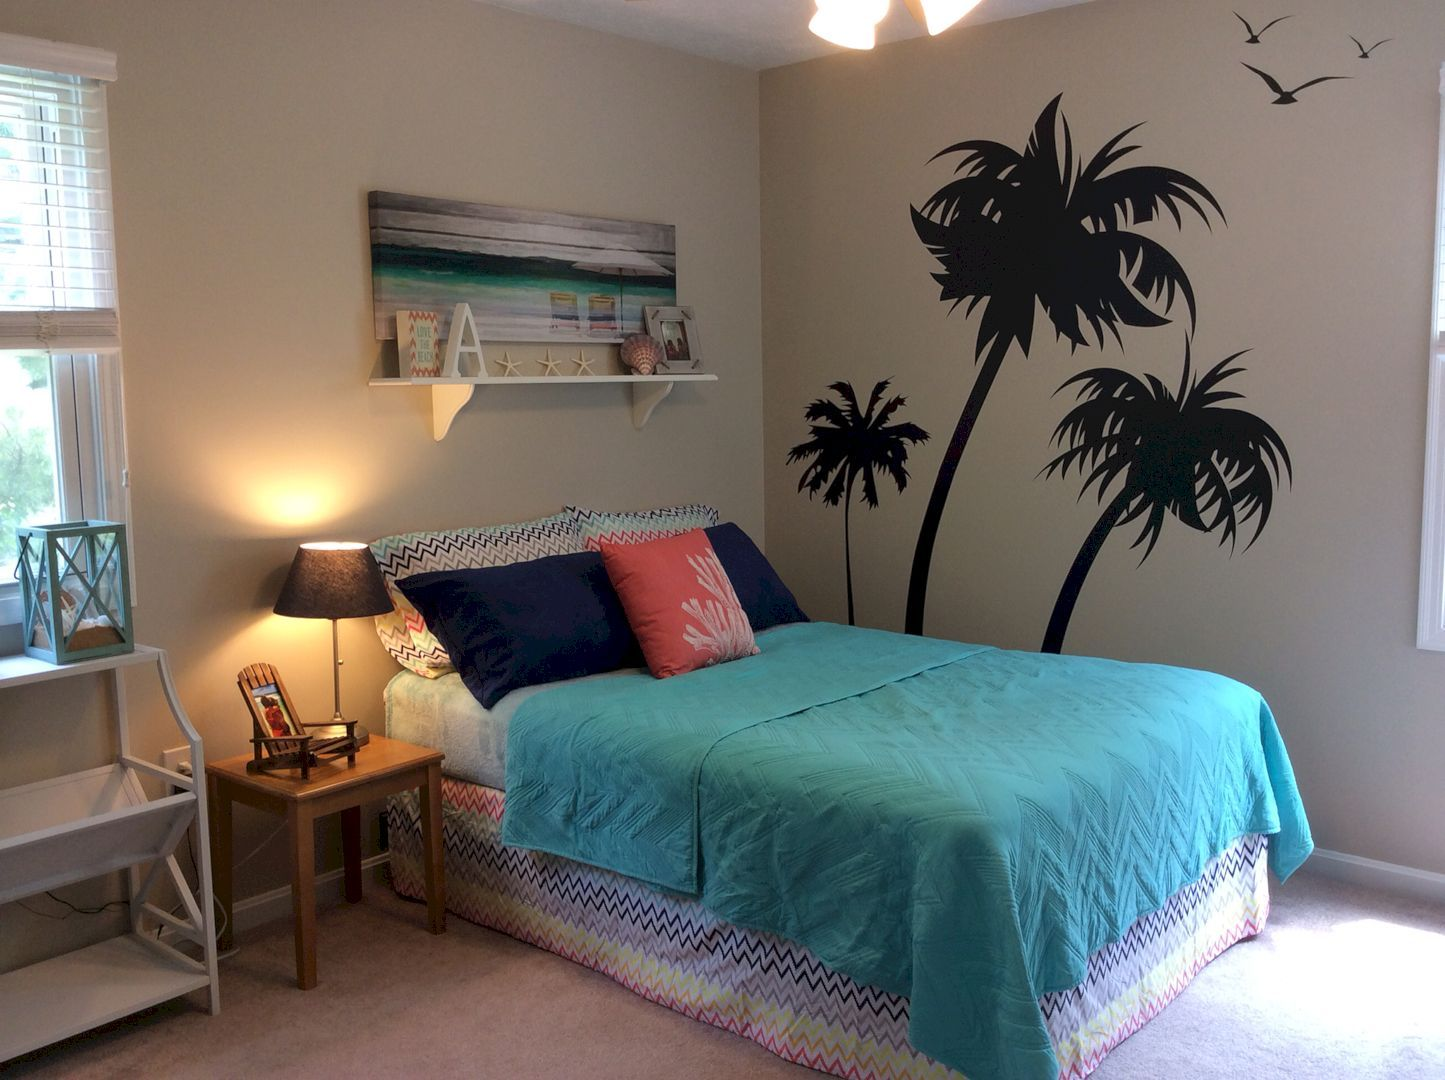 16 Cool Bedroom Interior Design Ideas Beach Themed Room Bedroom Themes Beach Themed Bedroom